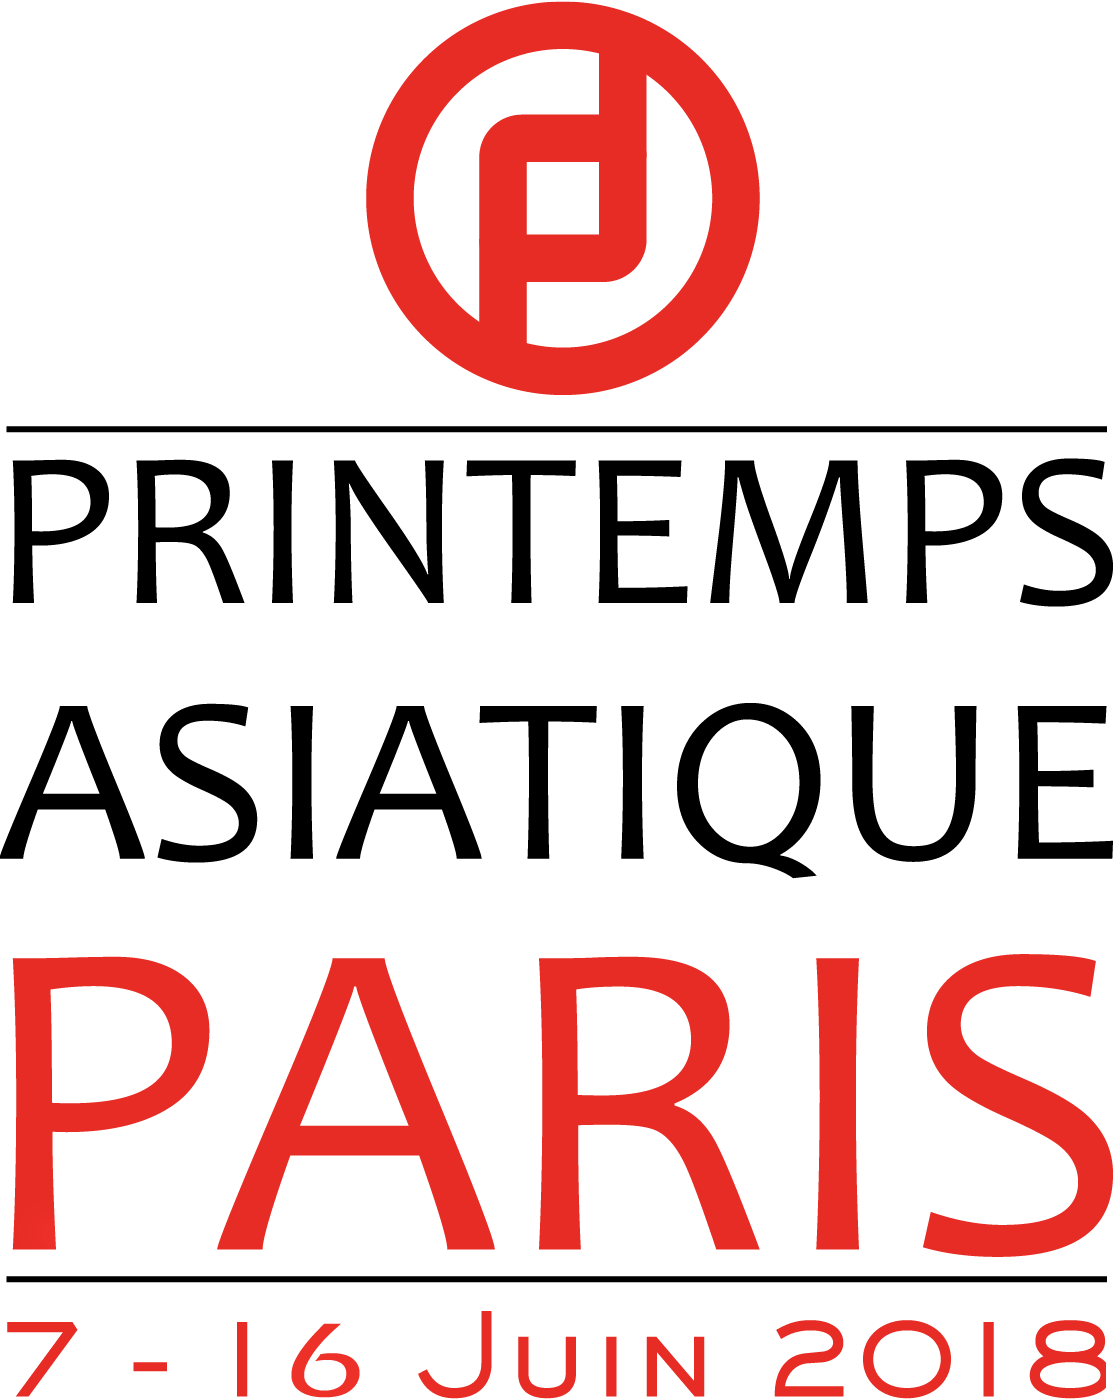 //www.galeriehioco.com/wp-content/uploads/2018/05/LOGO-Printemps-Asiatique-Paris-01-16-juin.png